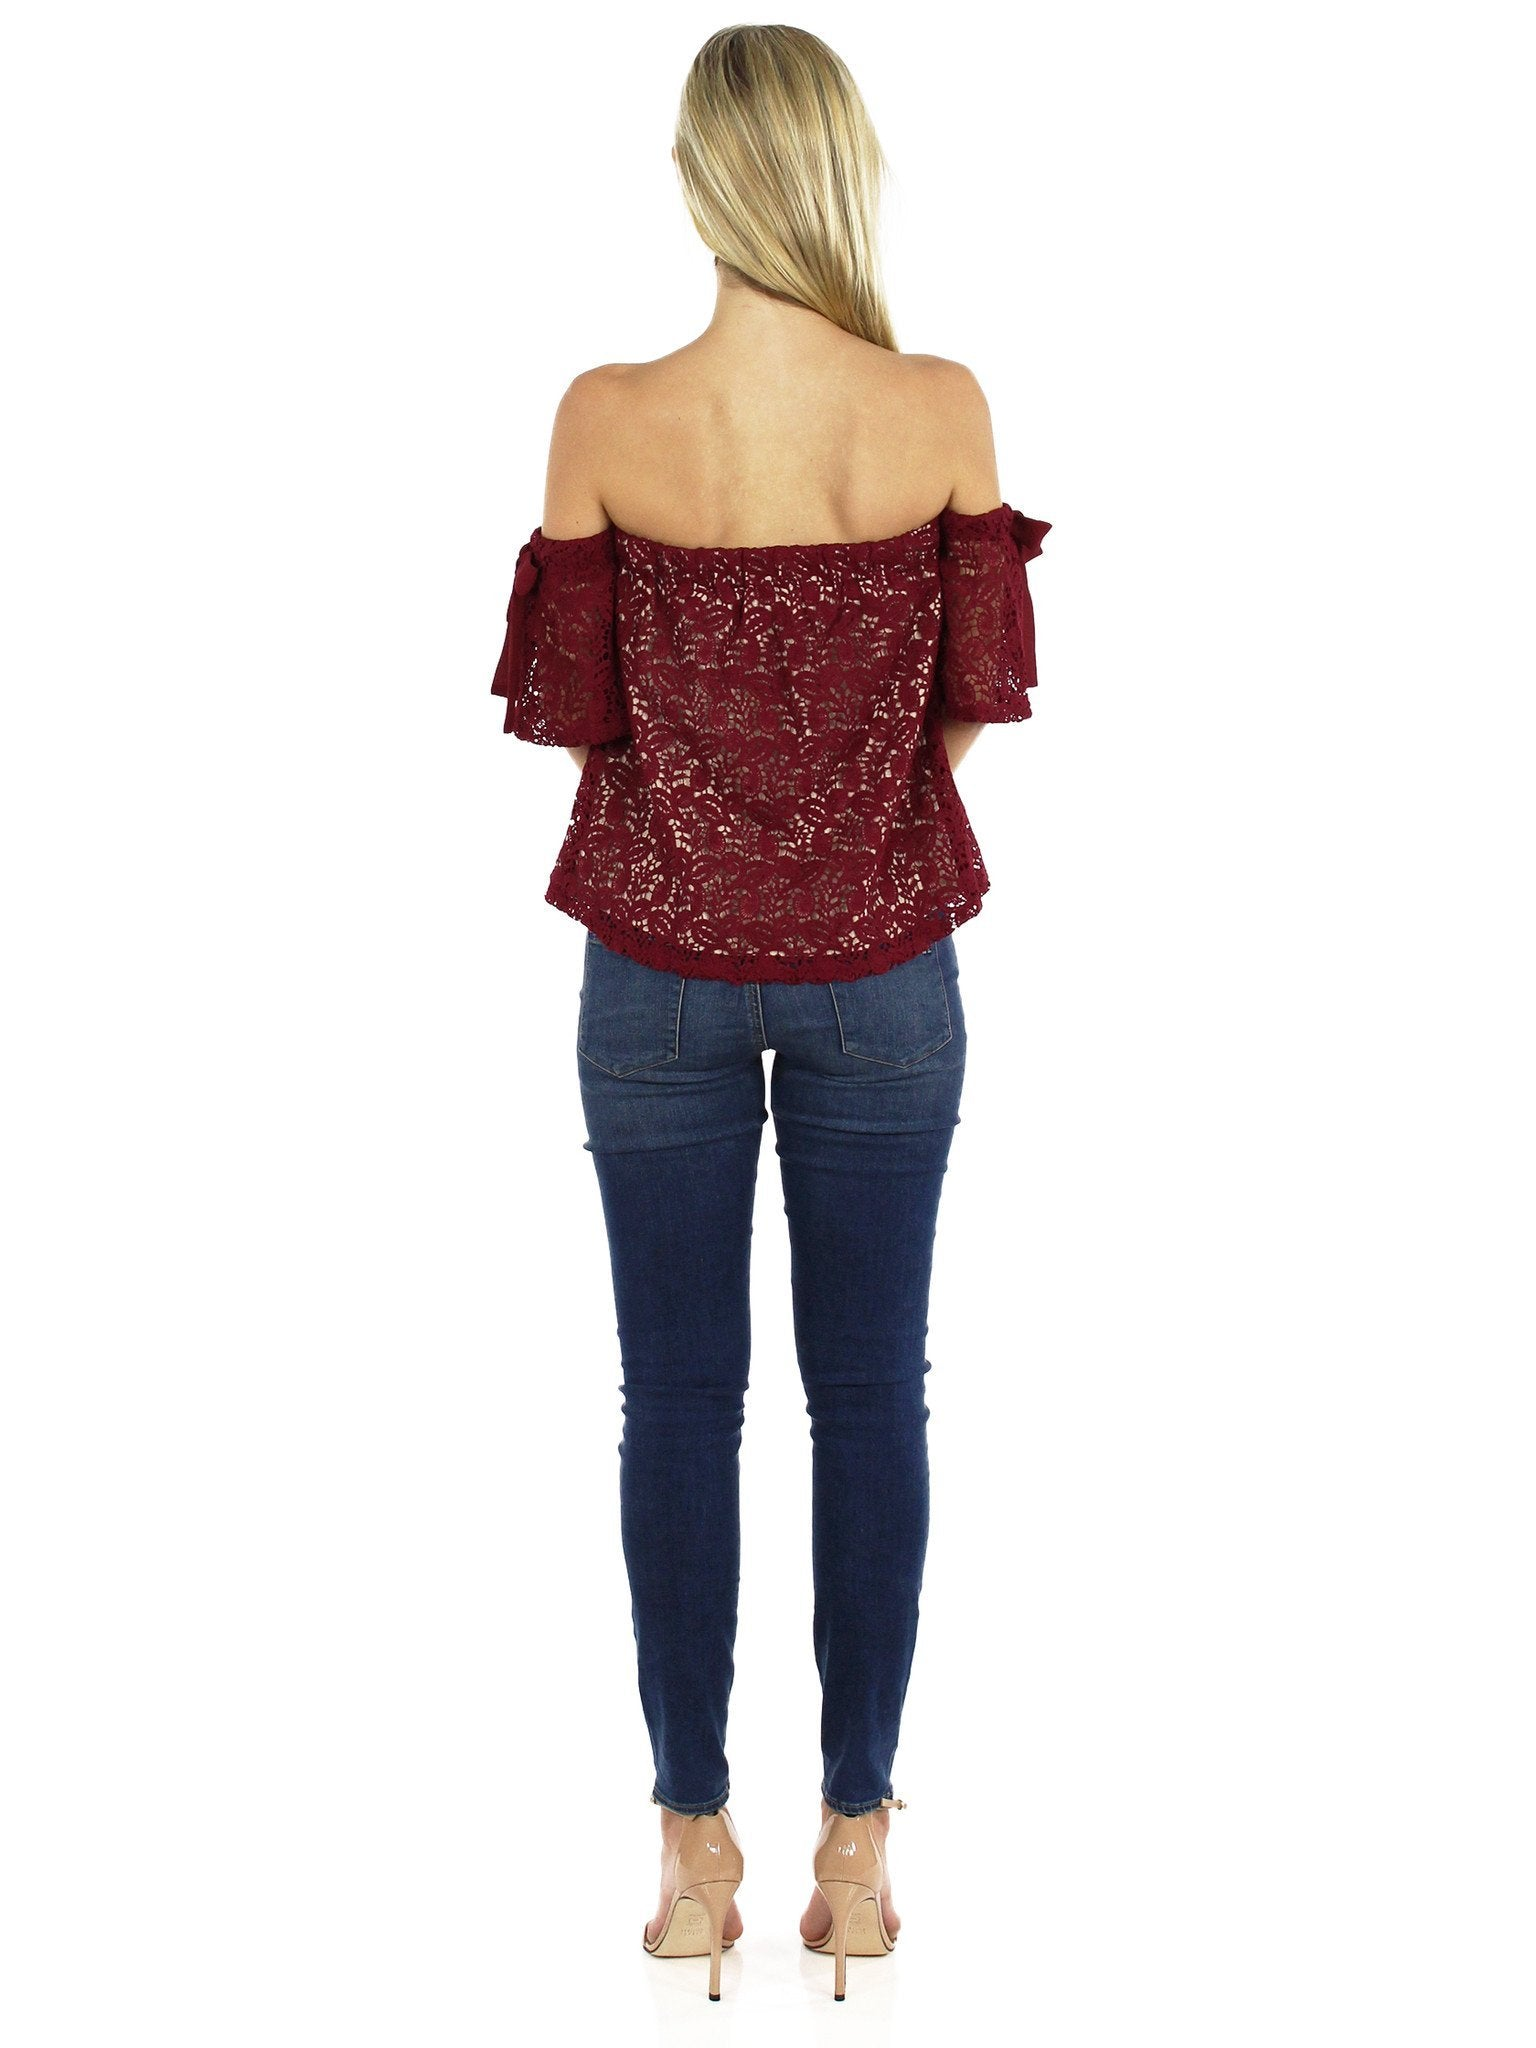 Girl wearing a top rental from Moon River called Off Shoulder Lace Top